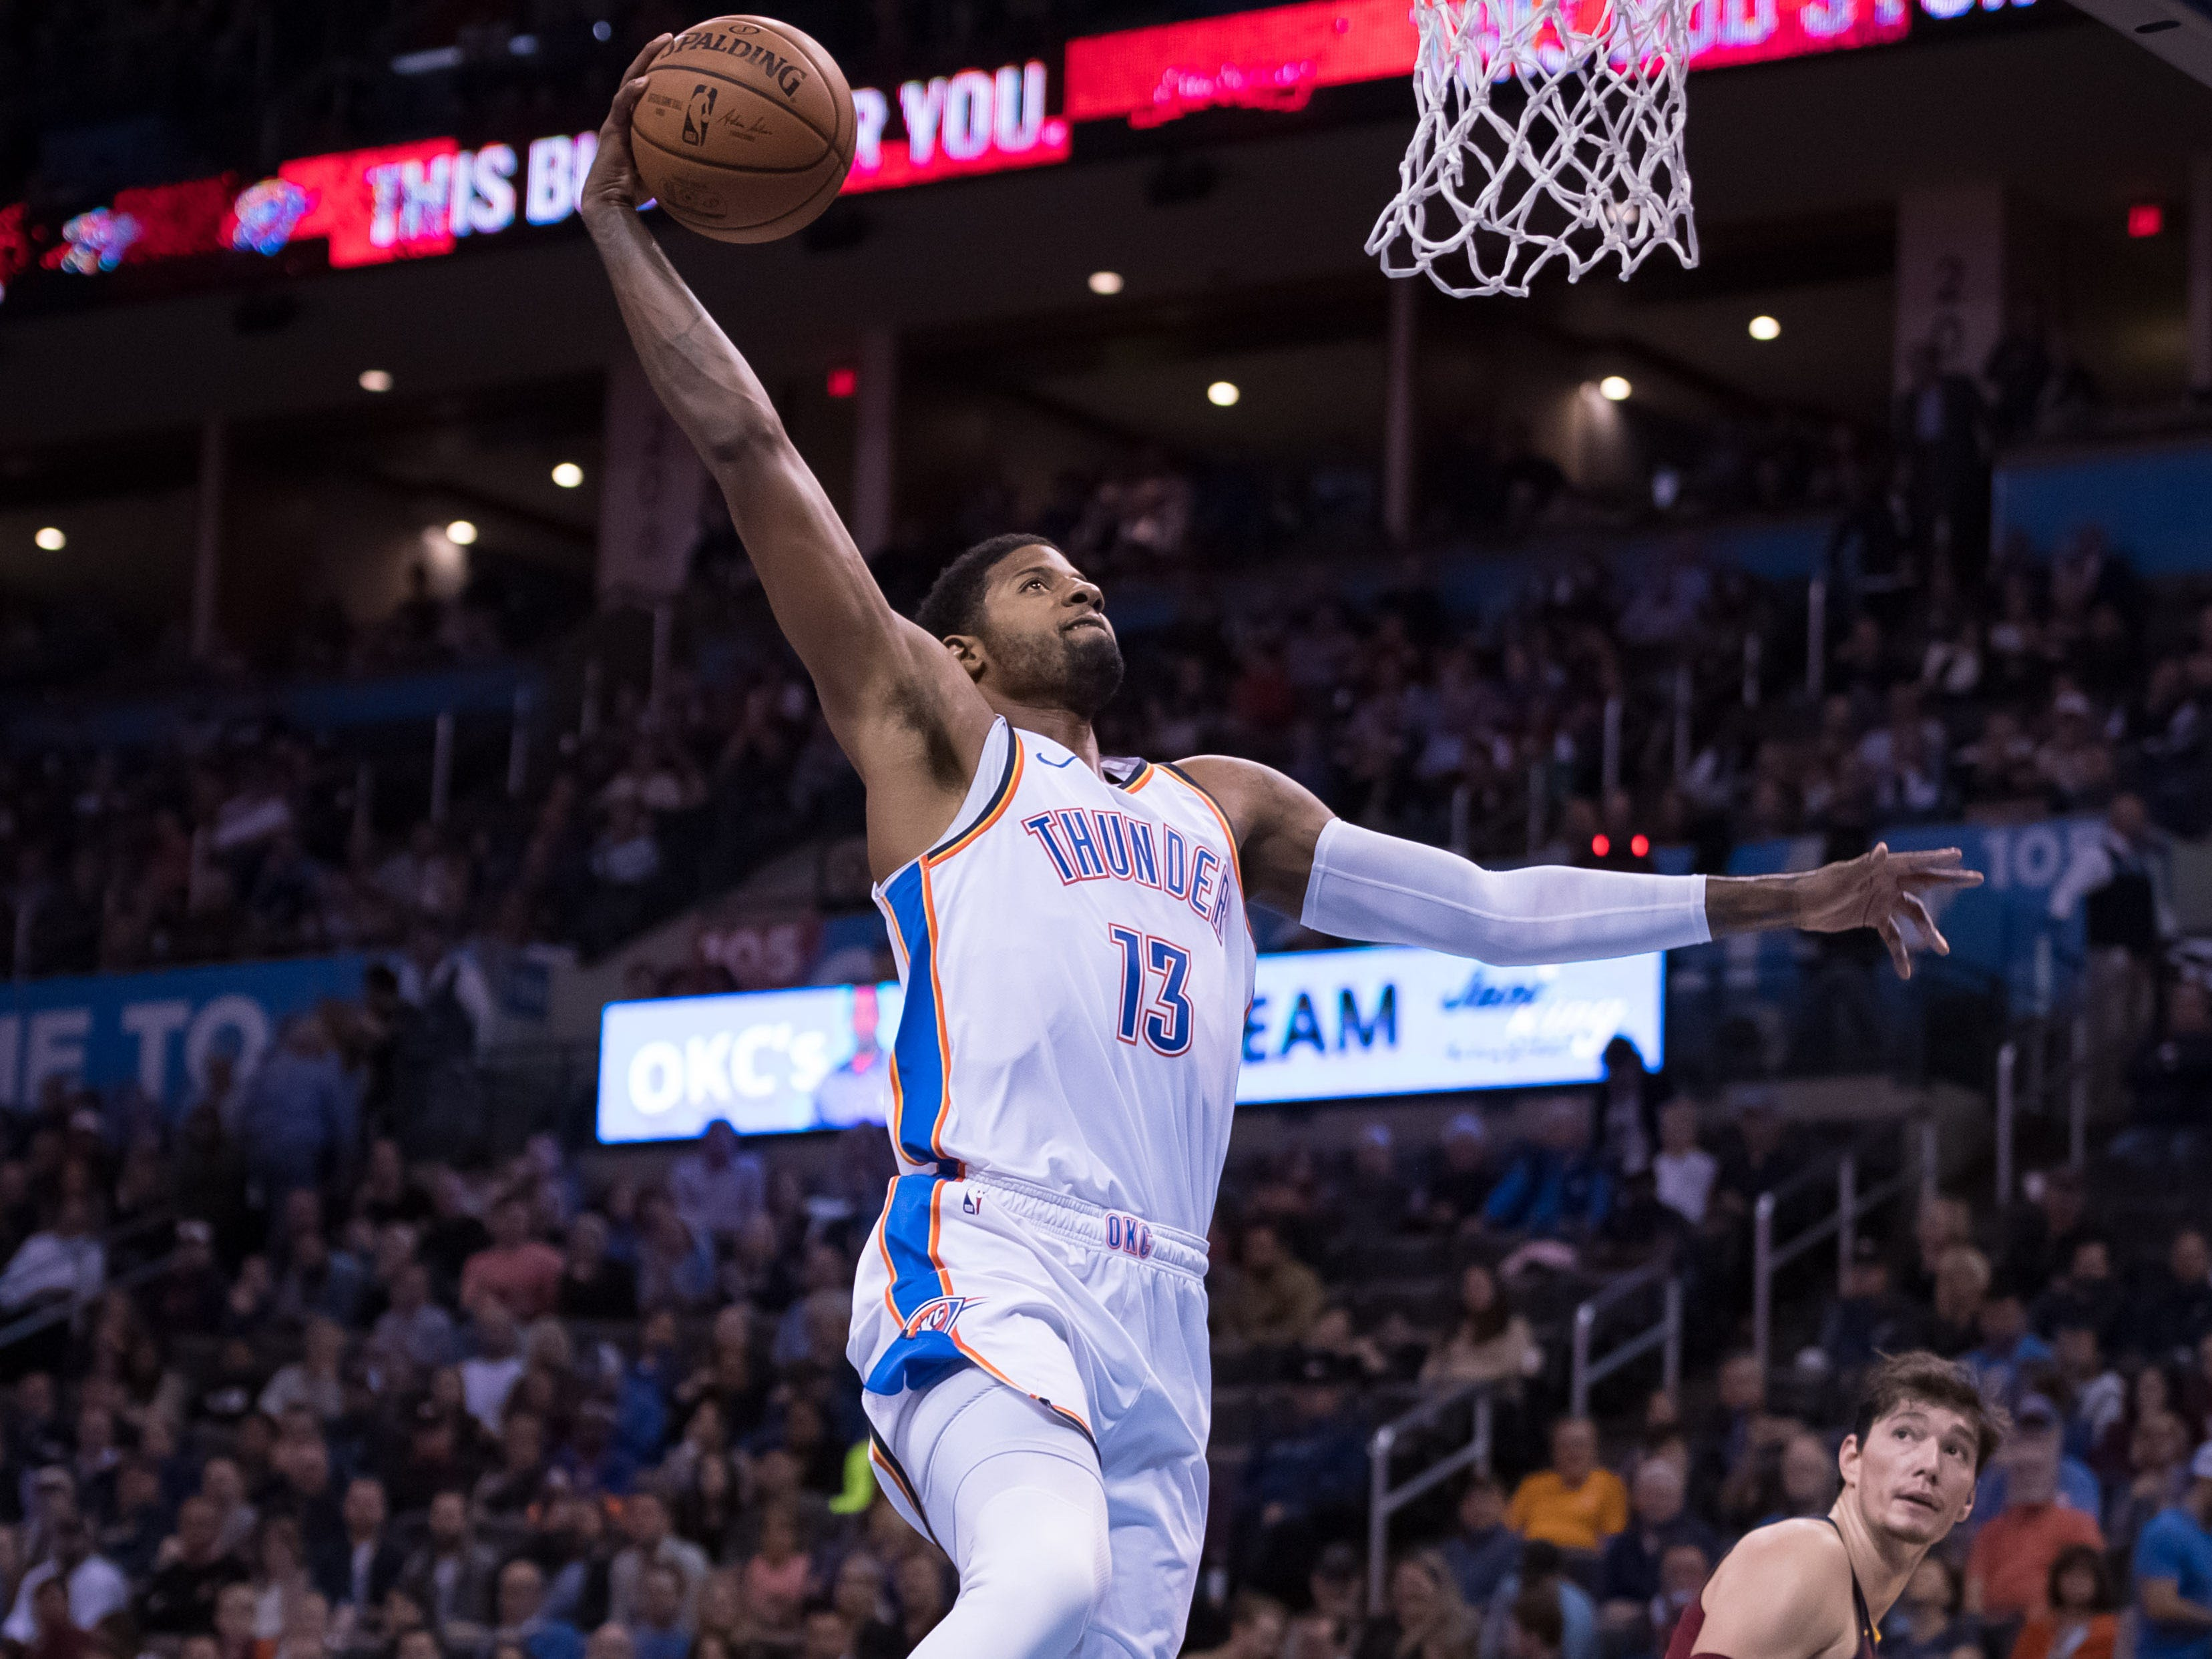 Nov. 28: Thunder forward Paul George rises up for a one-handed slam during the second half against the Cavaliers in Oklahoma City.